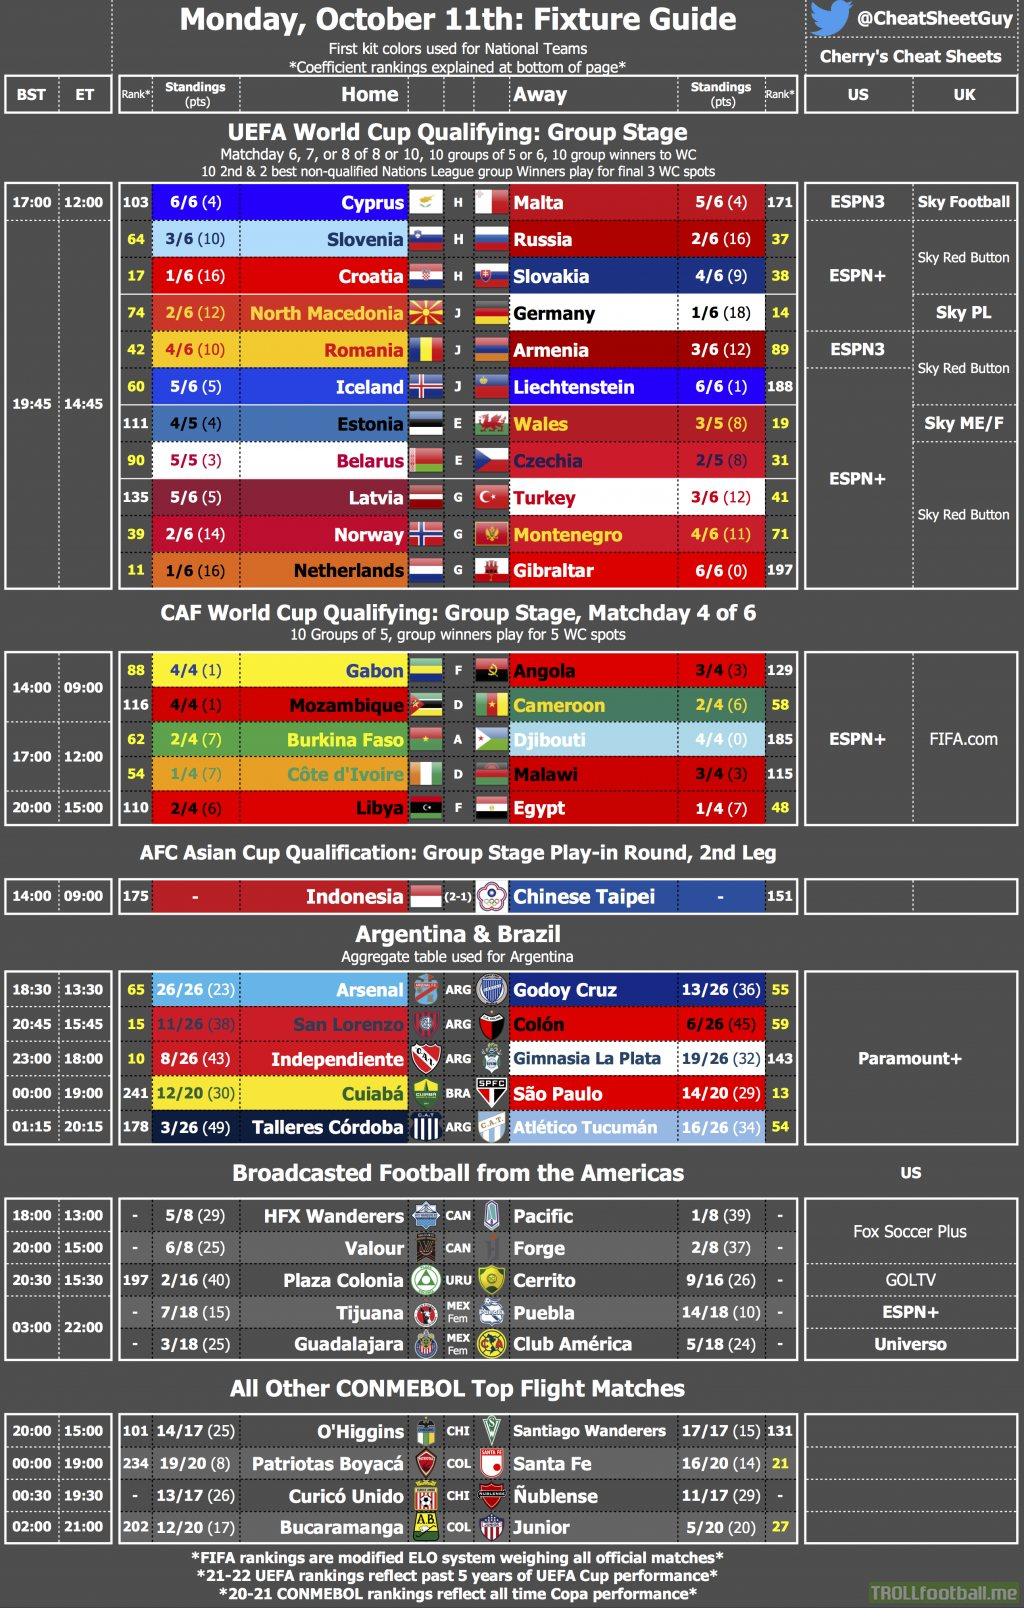 A Fixture Cheat Sheet & Broadcast Guide for Monday